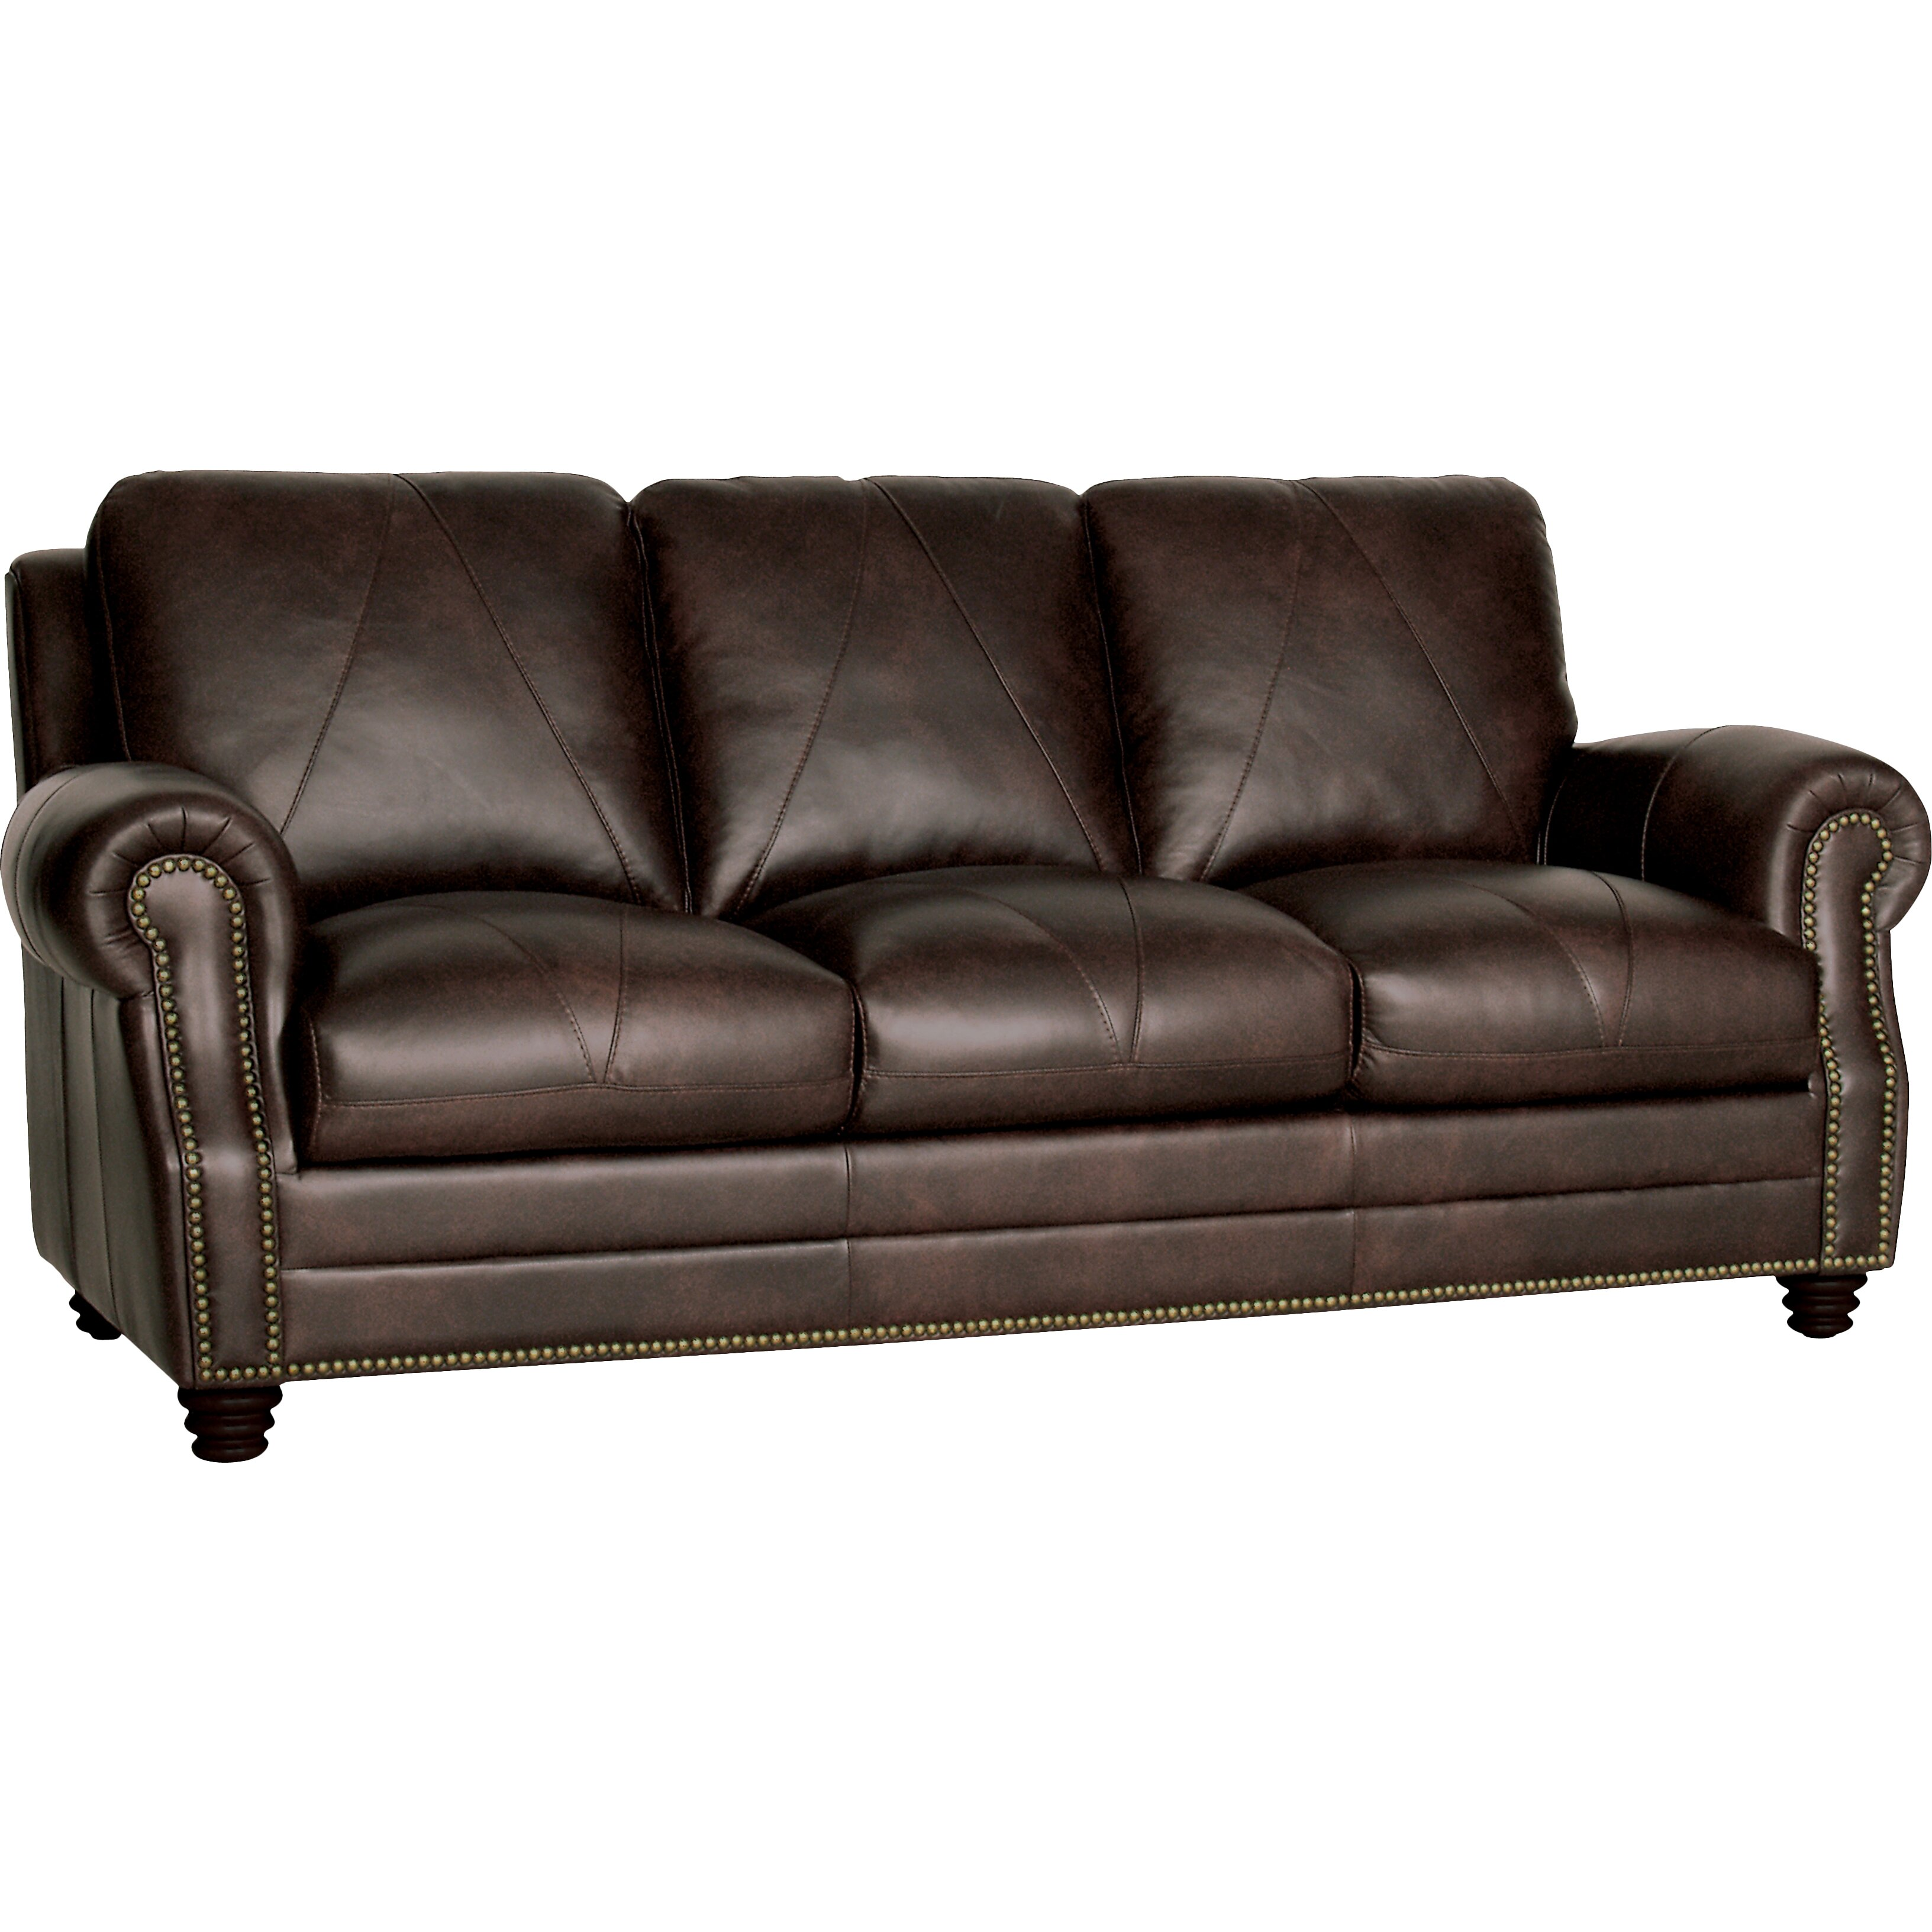 Darby home co gardner leather sofa reviews wayfair